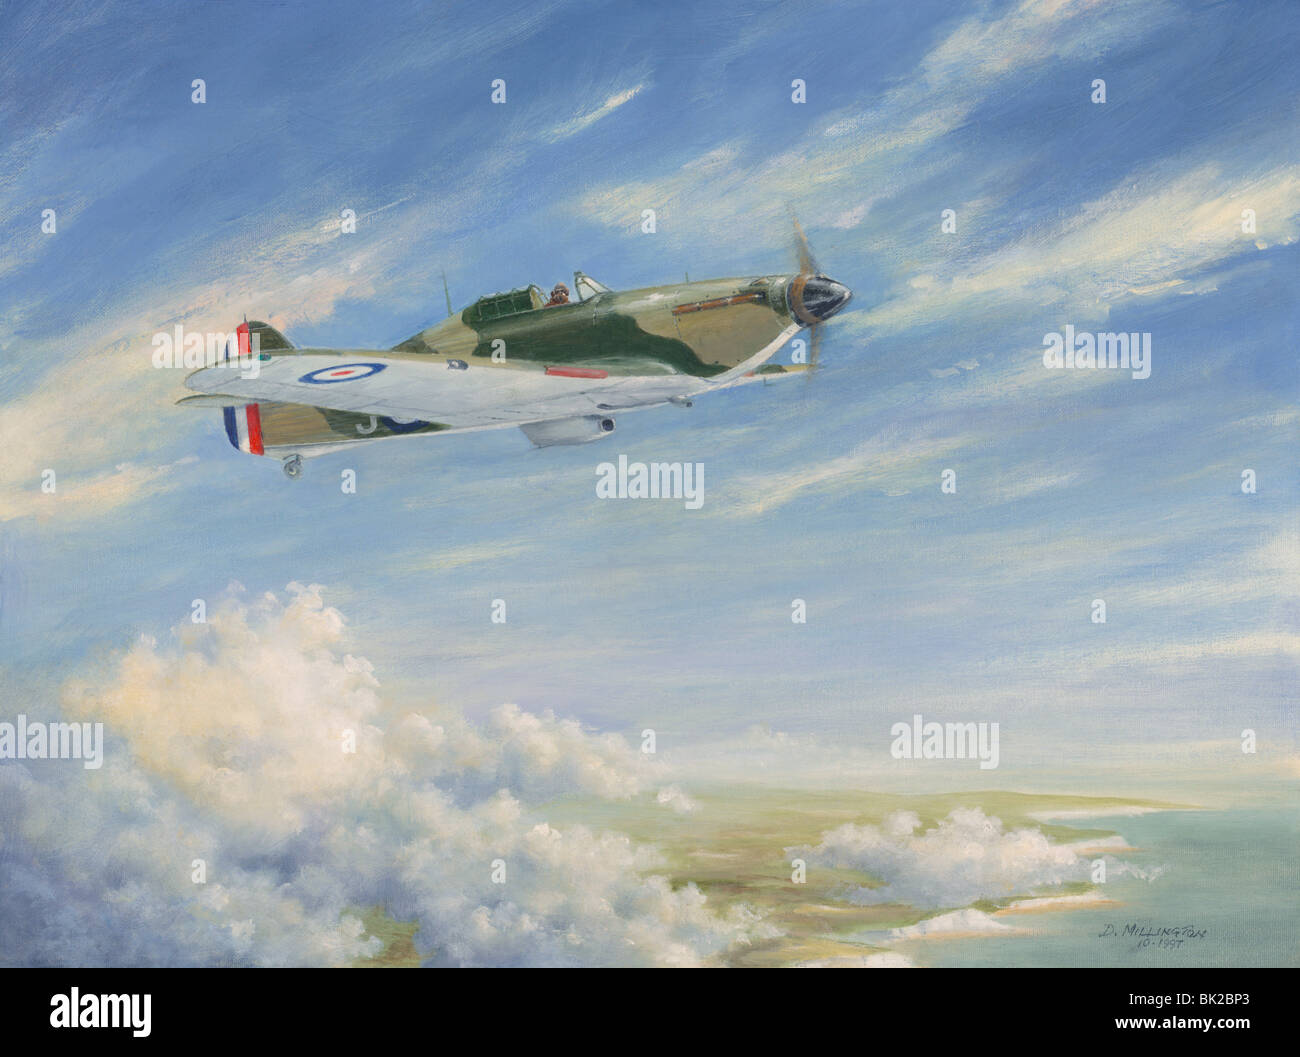 A Hawker Hurricane flying over the coast - Stock Image